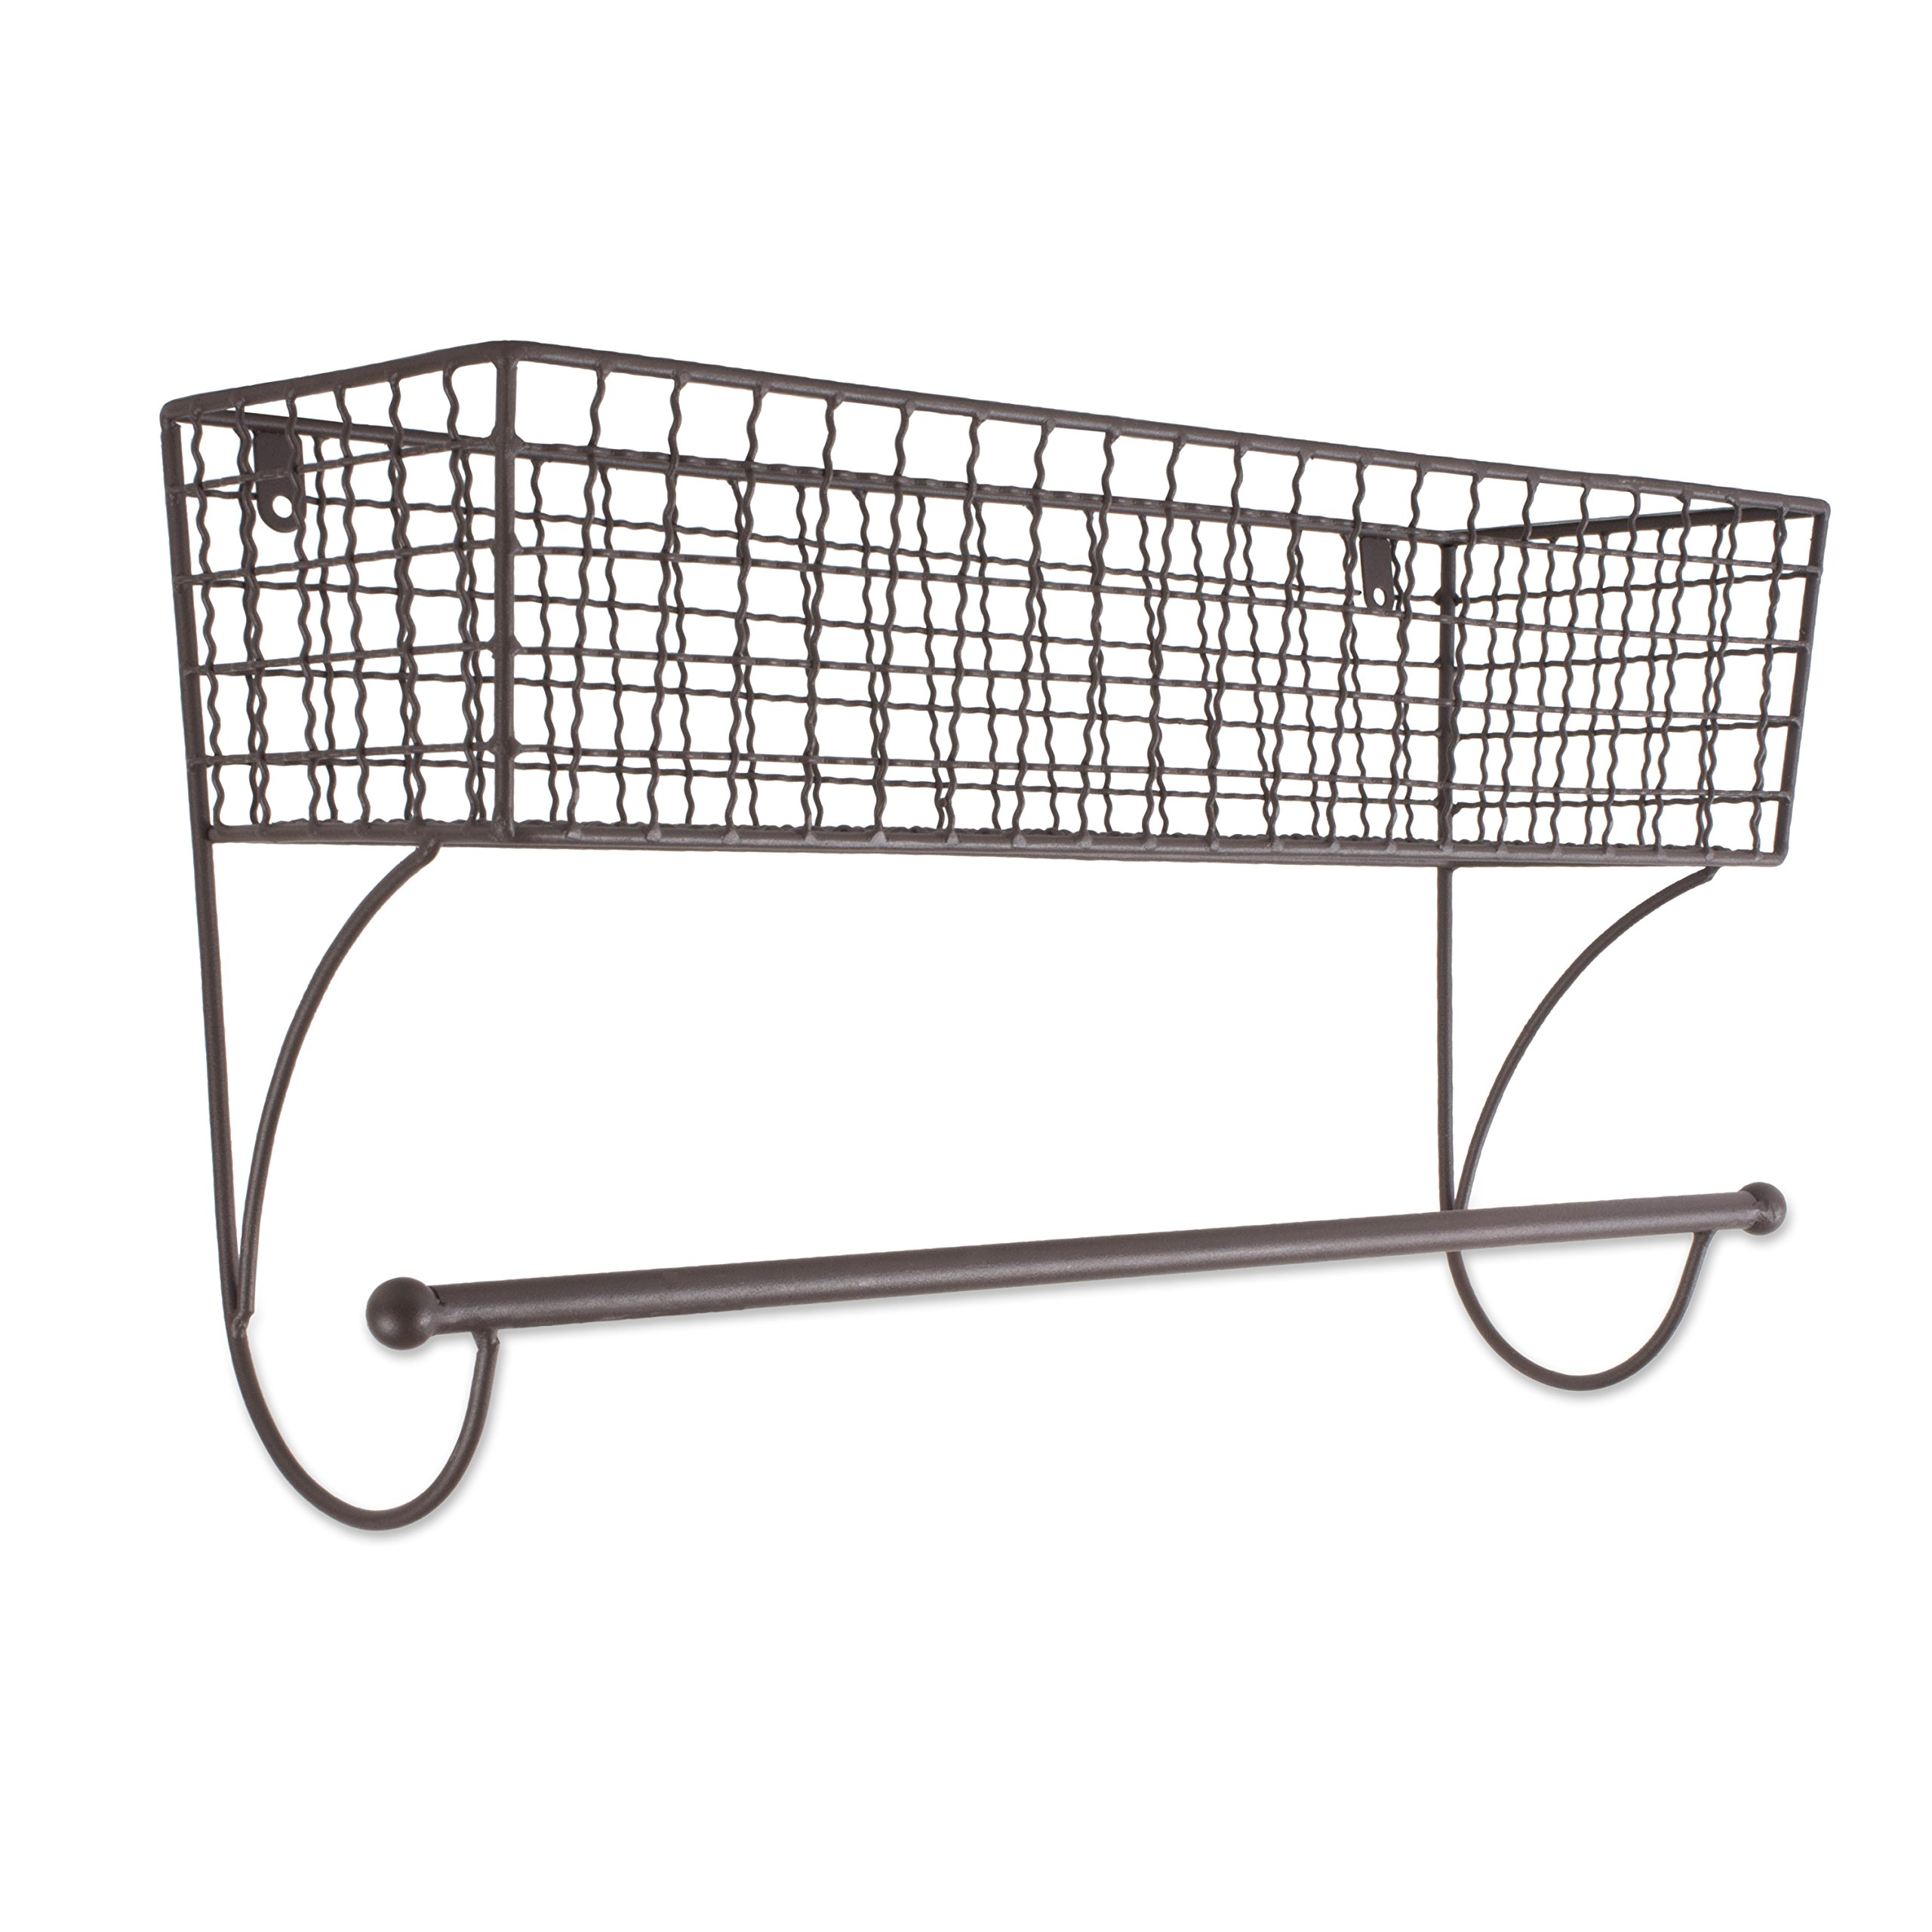 Home Traditions Z02224 Rustic Metal Wall Mount Shelf with Towel Bar, Large by Home Traditions